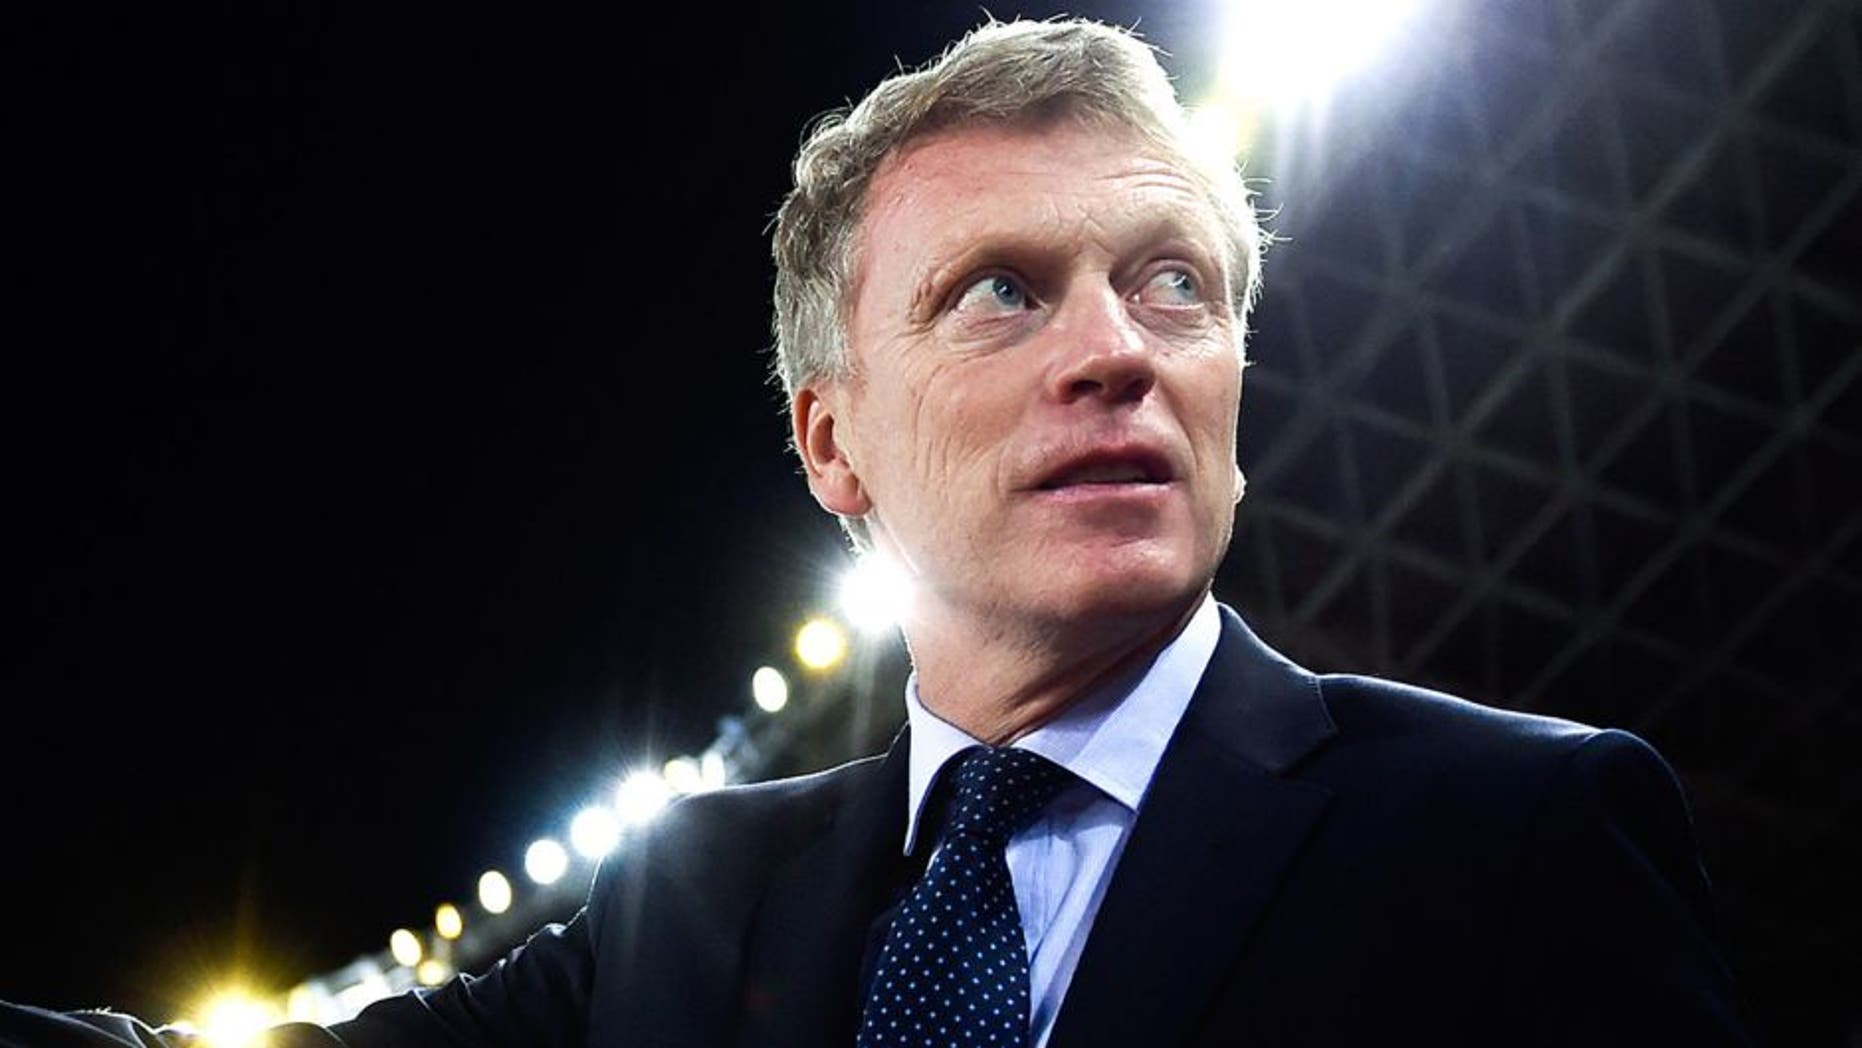 SAN SEBASTIAN, SPAIN - NOVEMBER 28: Head coach David Moyes of Real Sociedad looks on during the La Liga match between Real Socided and Elche FC at Estadio Anoeta on November 28, 2014 in San Sebastian, Spain. (Photo by David Ramos/Getty Images)